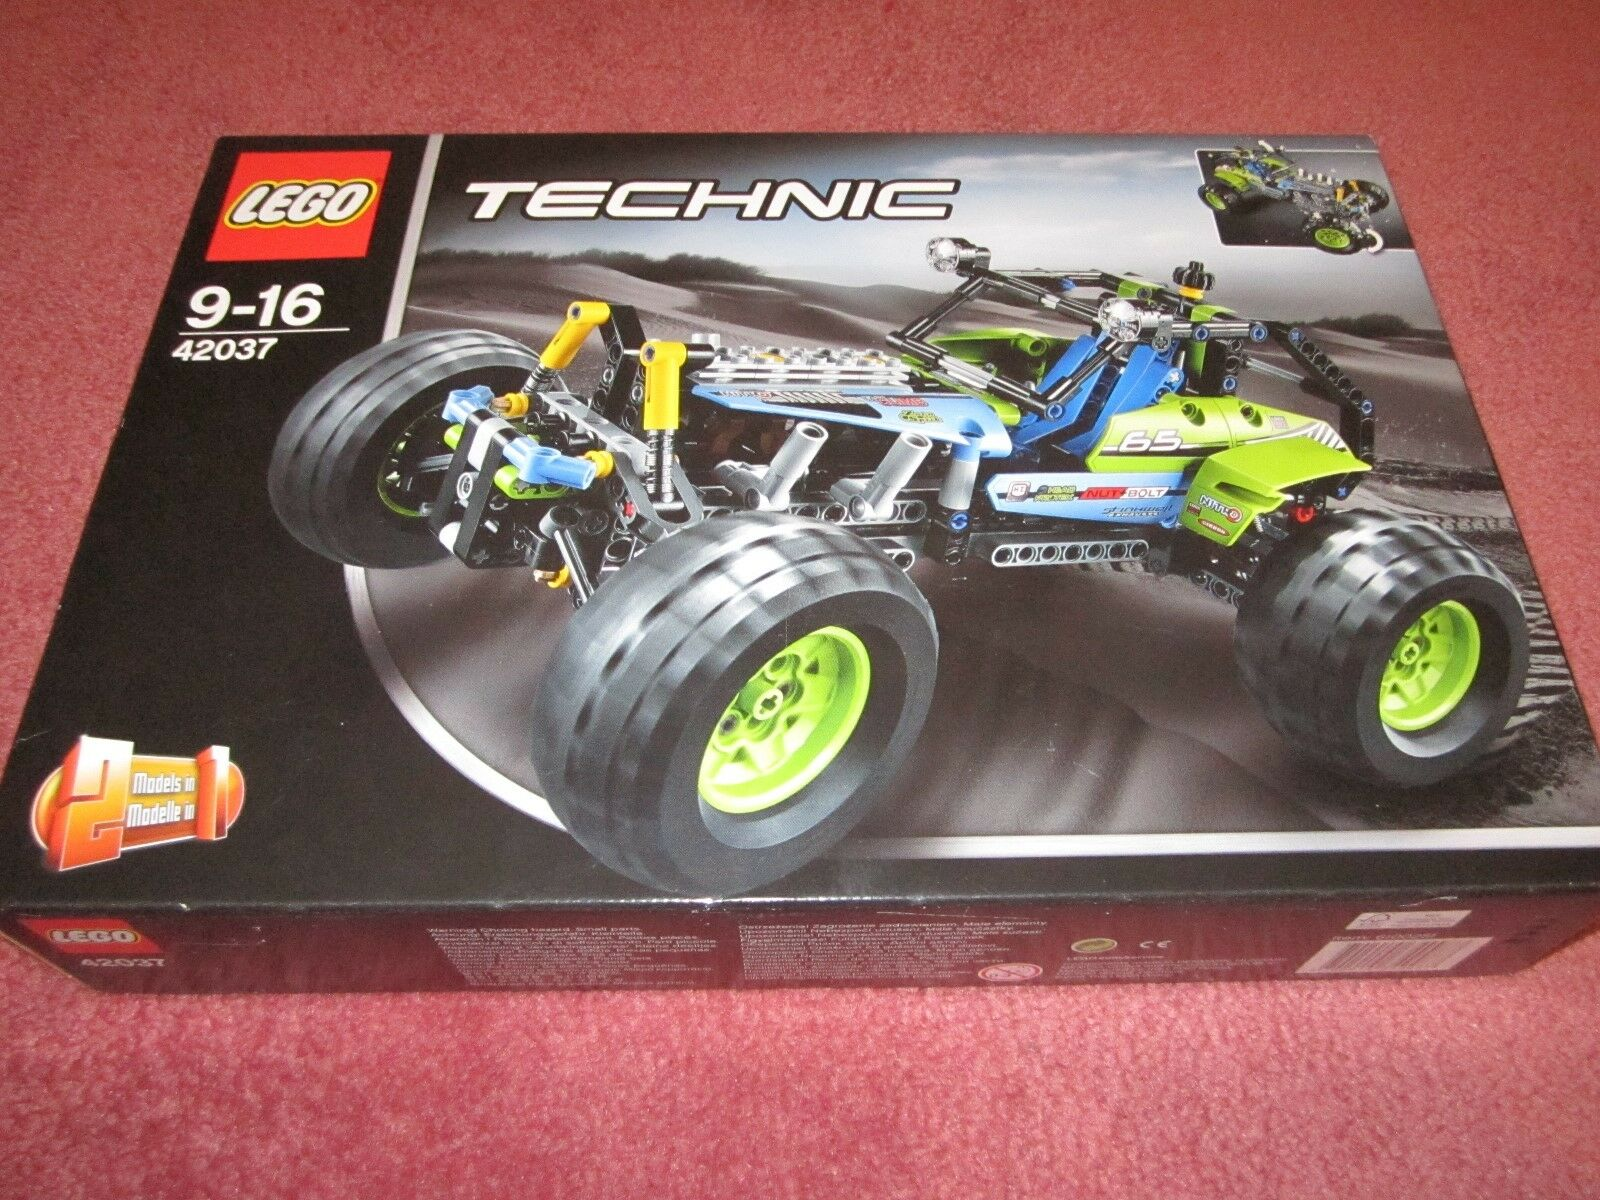 LEGO TECHNIC FORMULA OFF-ROADER 42037 SEE PHOTOS  - - - NEW BOXED SEALED a30999